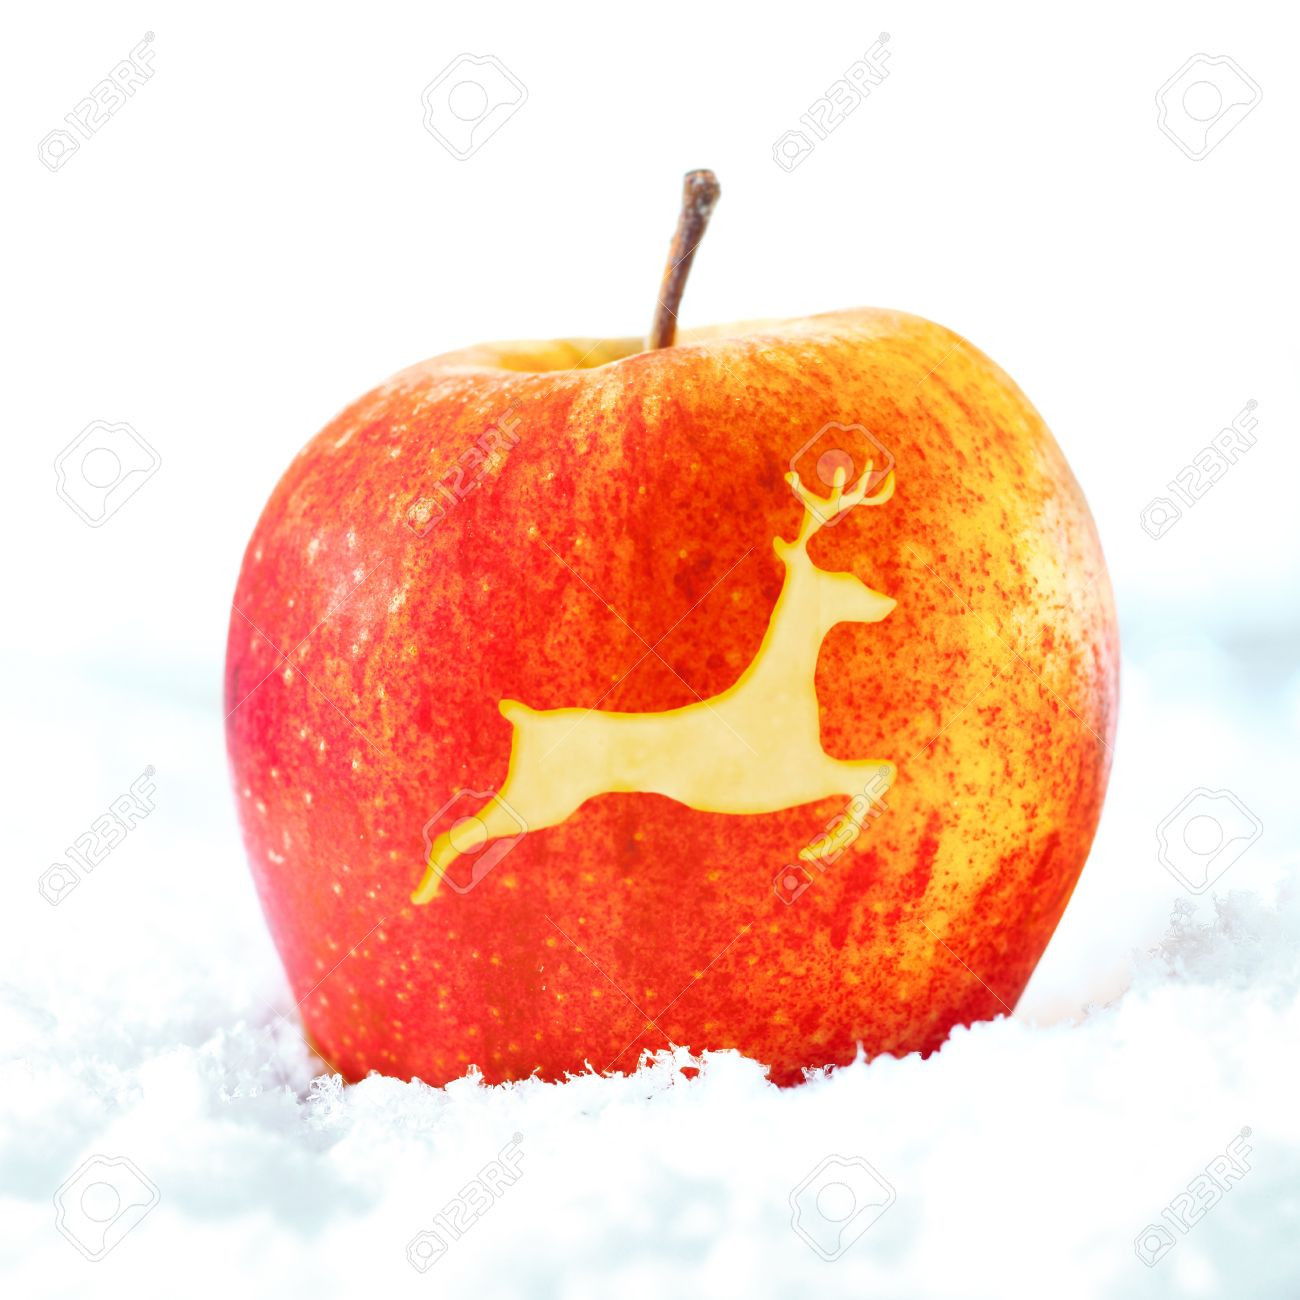 Ripe Red Decorative Christmas Apple With The Shape Of A Leaping ...